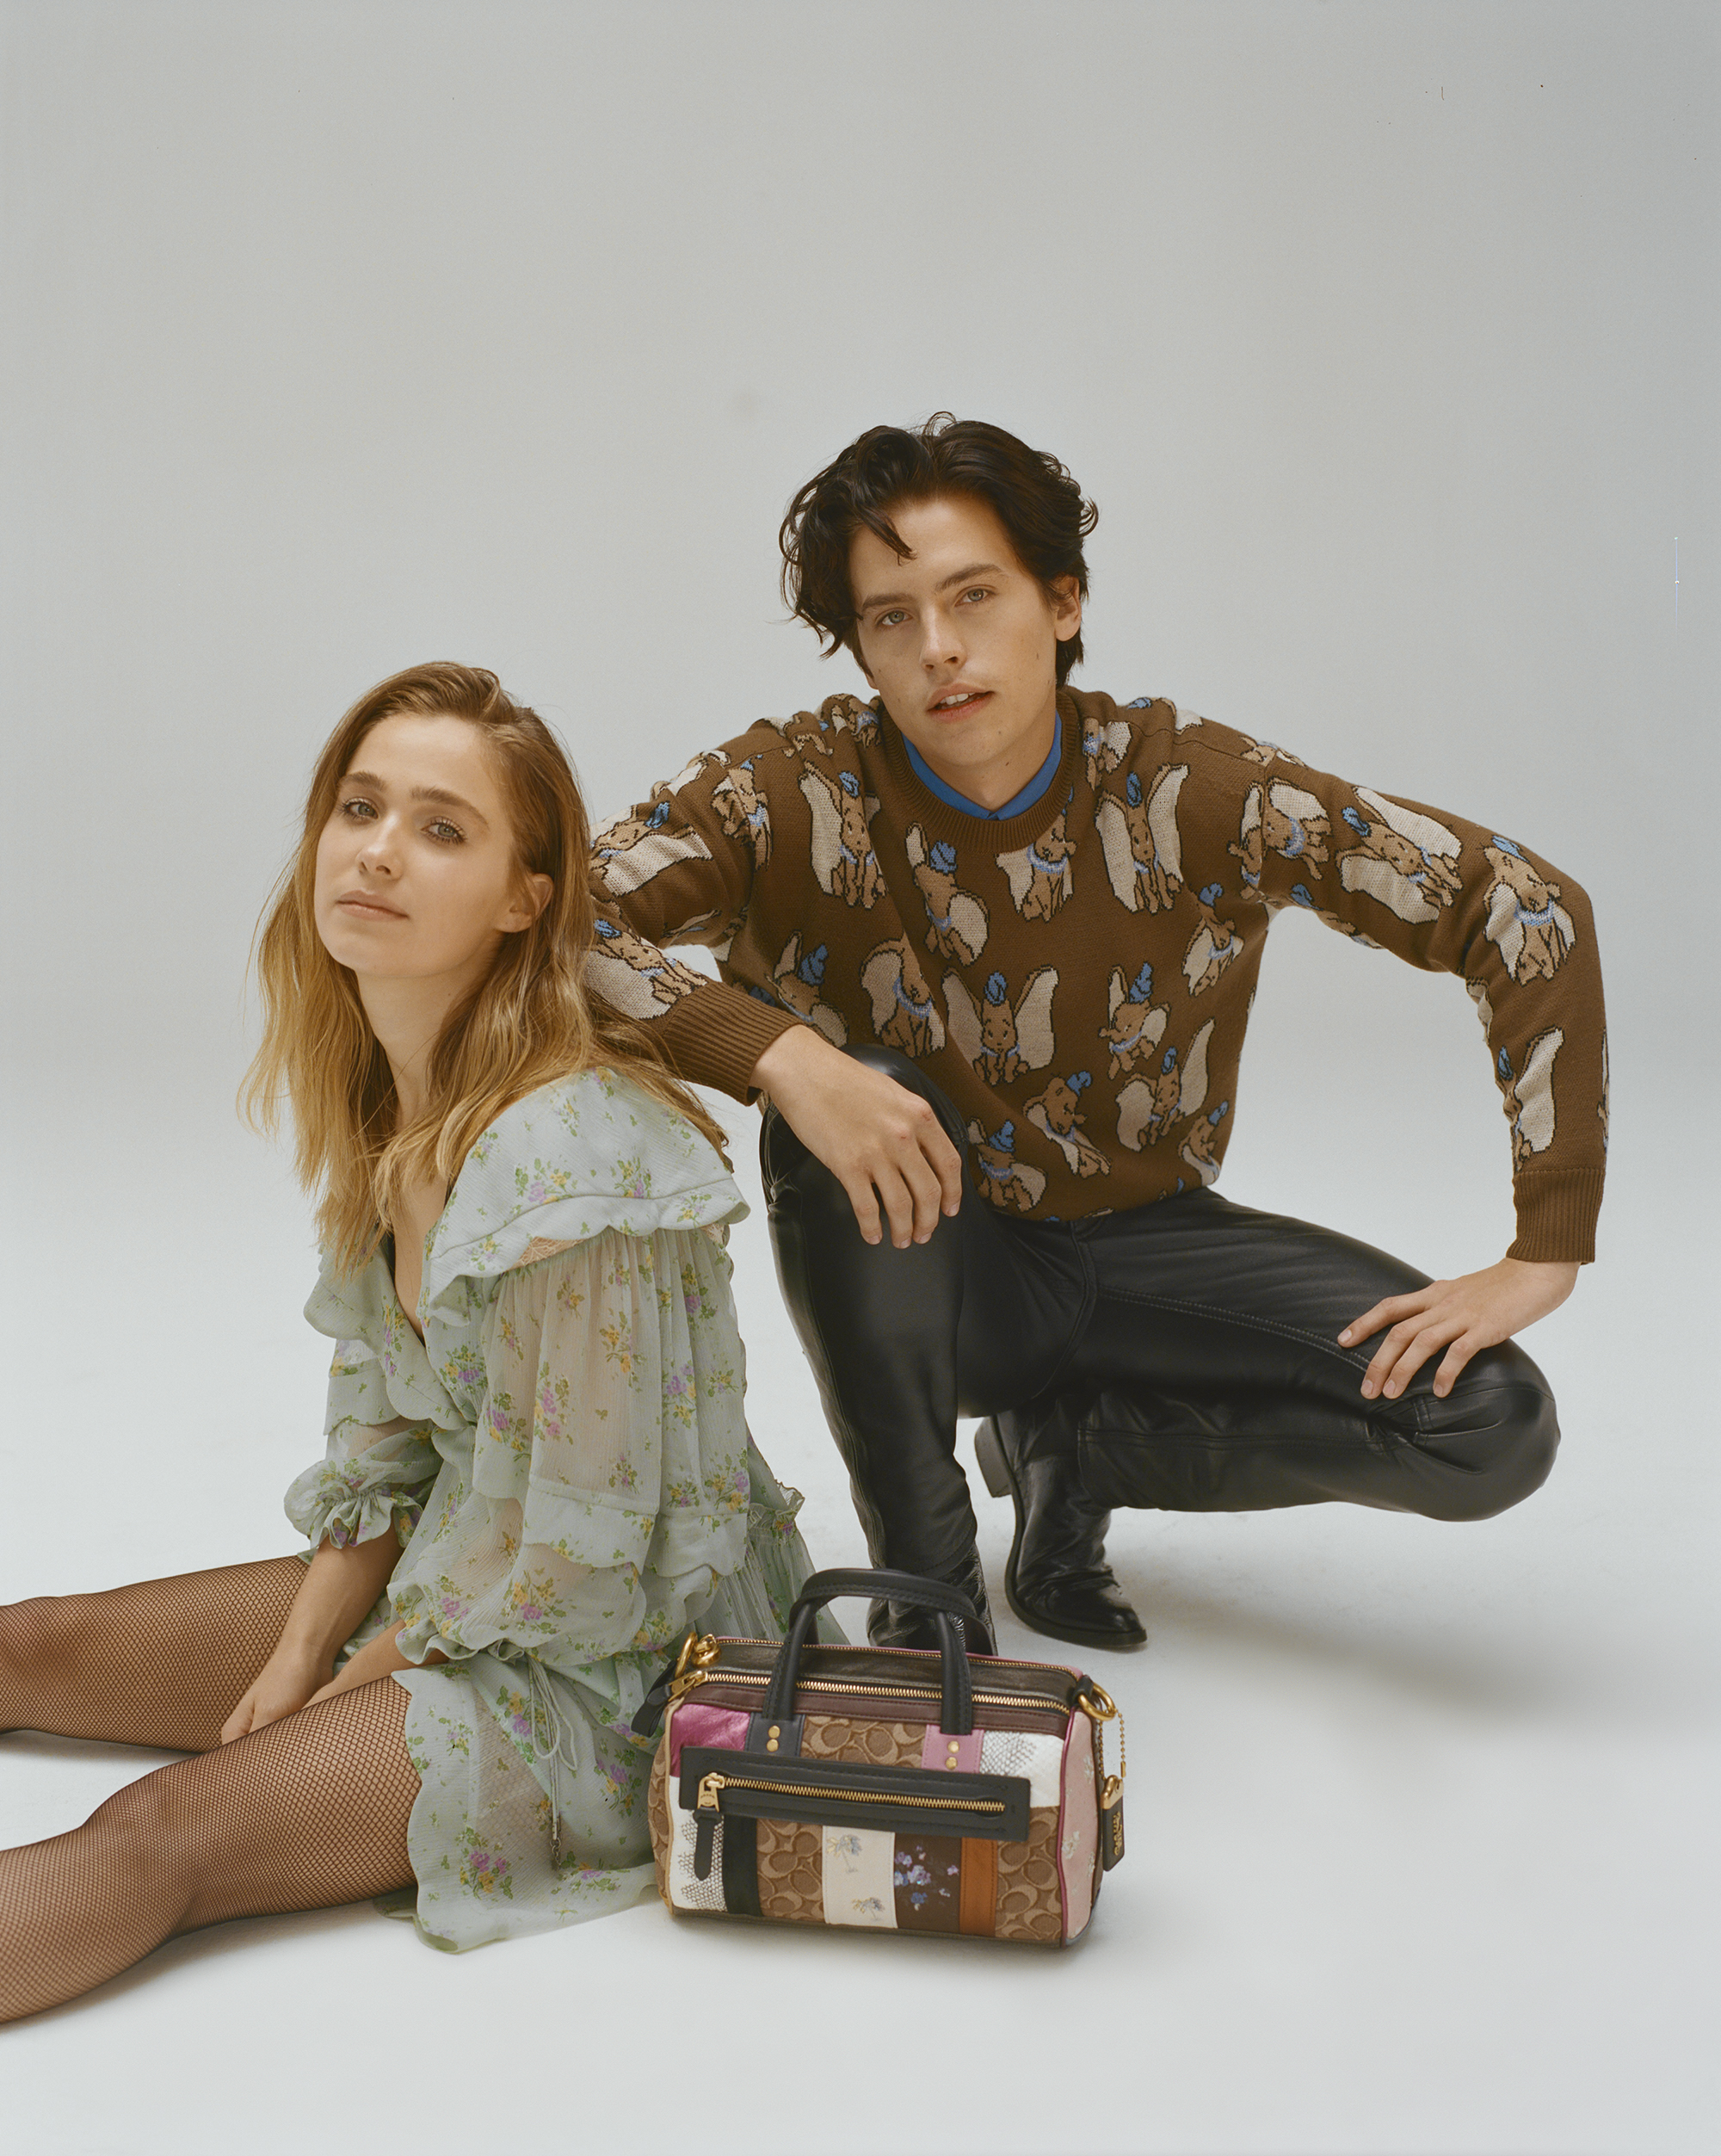 Cole Sprouse and Haley Lu Richardson on the Spring 19 cover of Wonderland in Coach